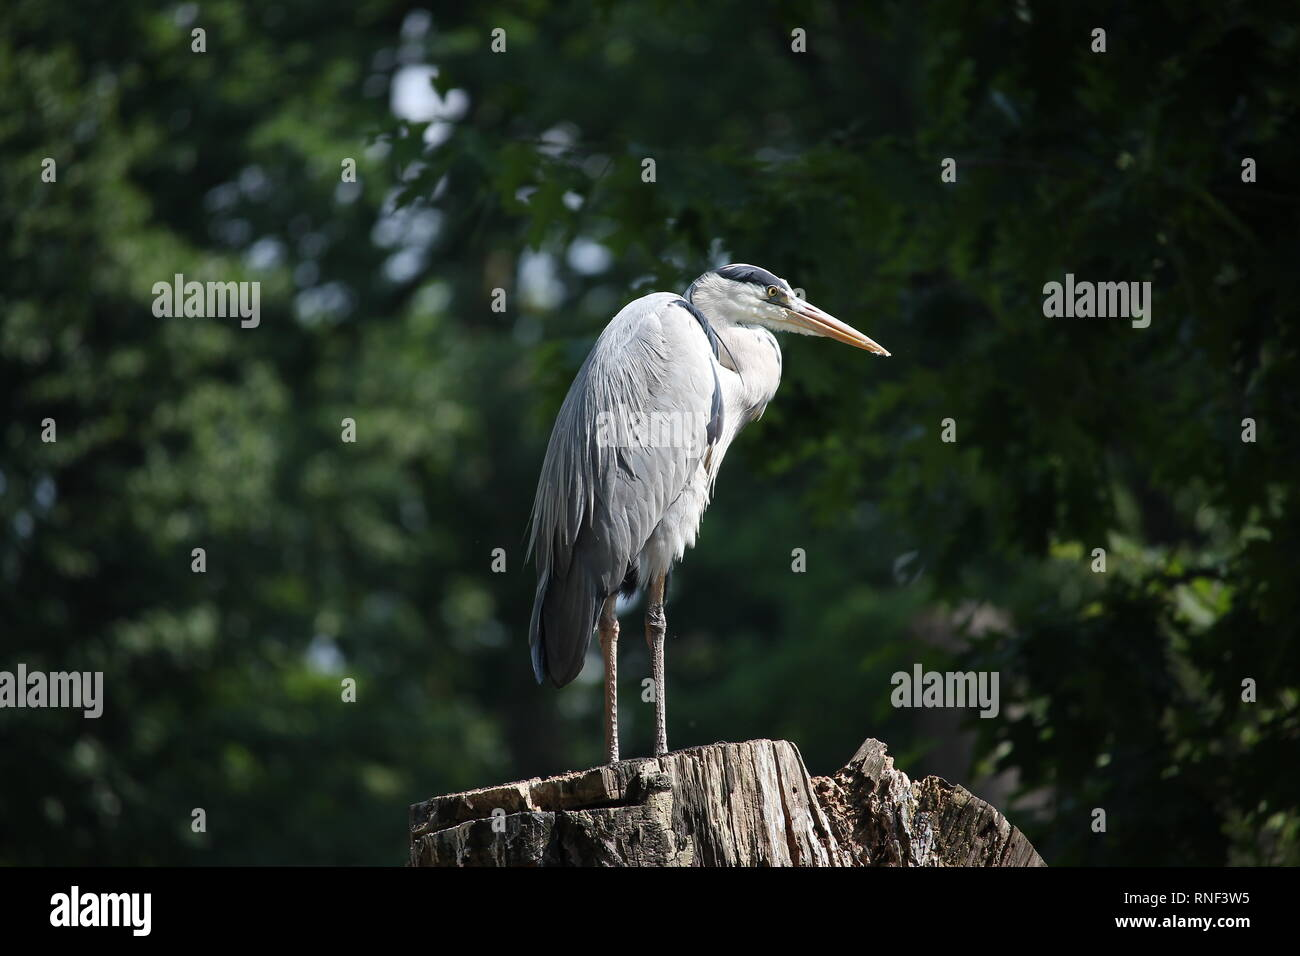 Grey Heron (Ardea cinerea) in a park in the Ruhr Area, Germany. - Stock Image